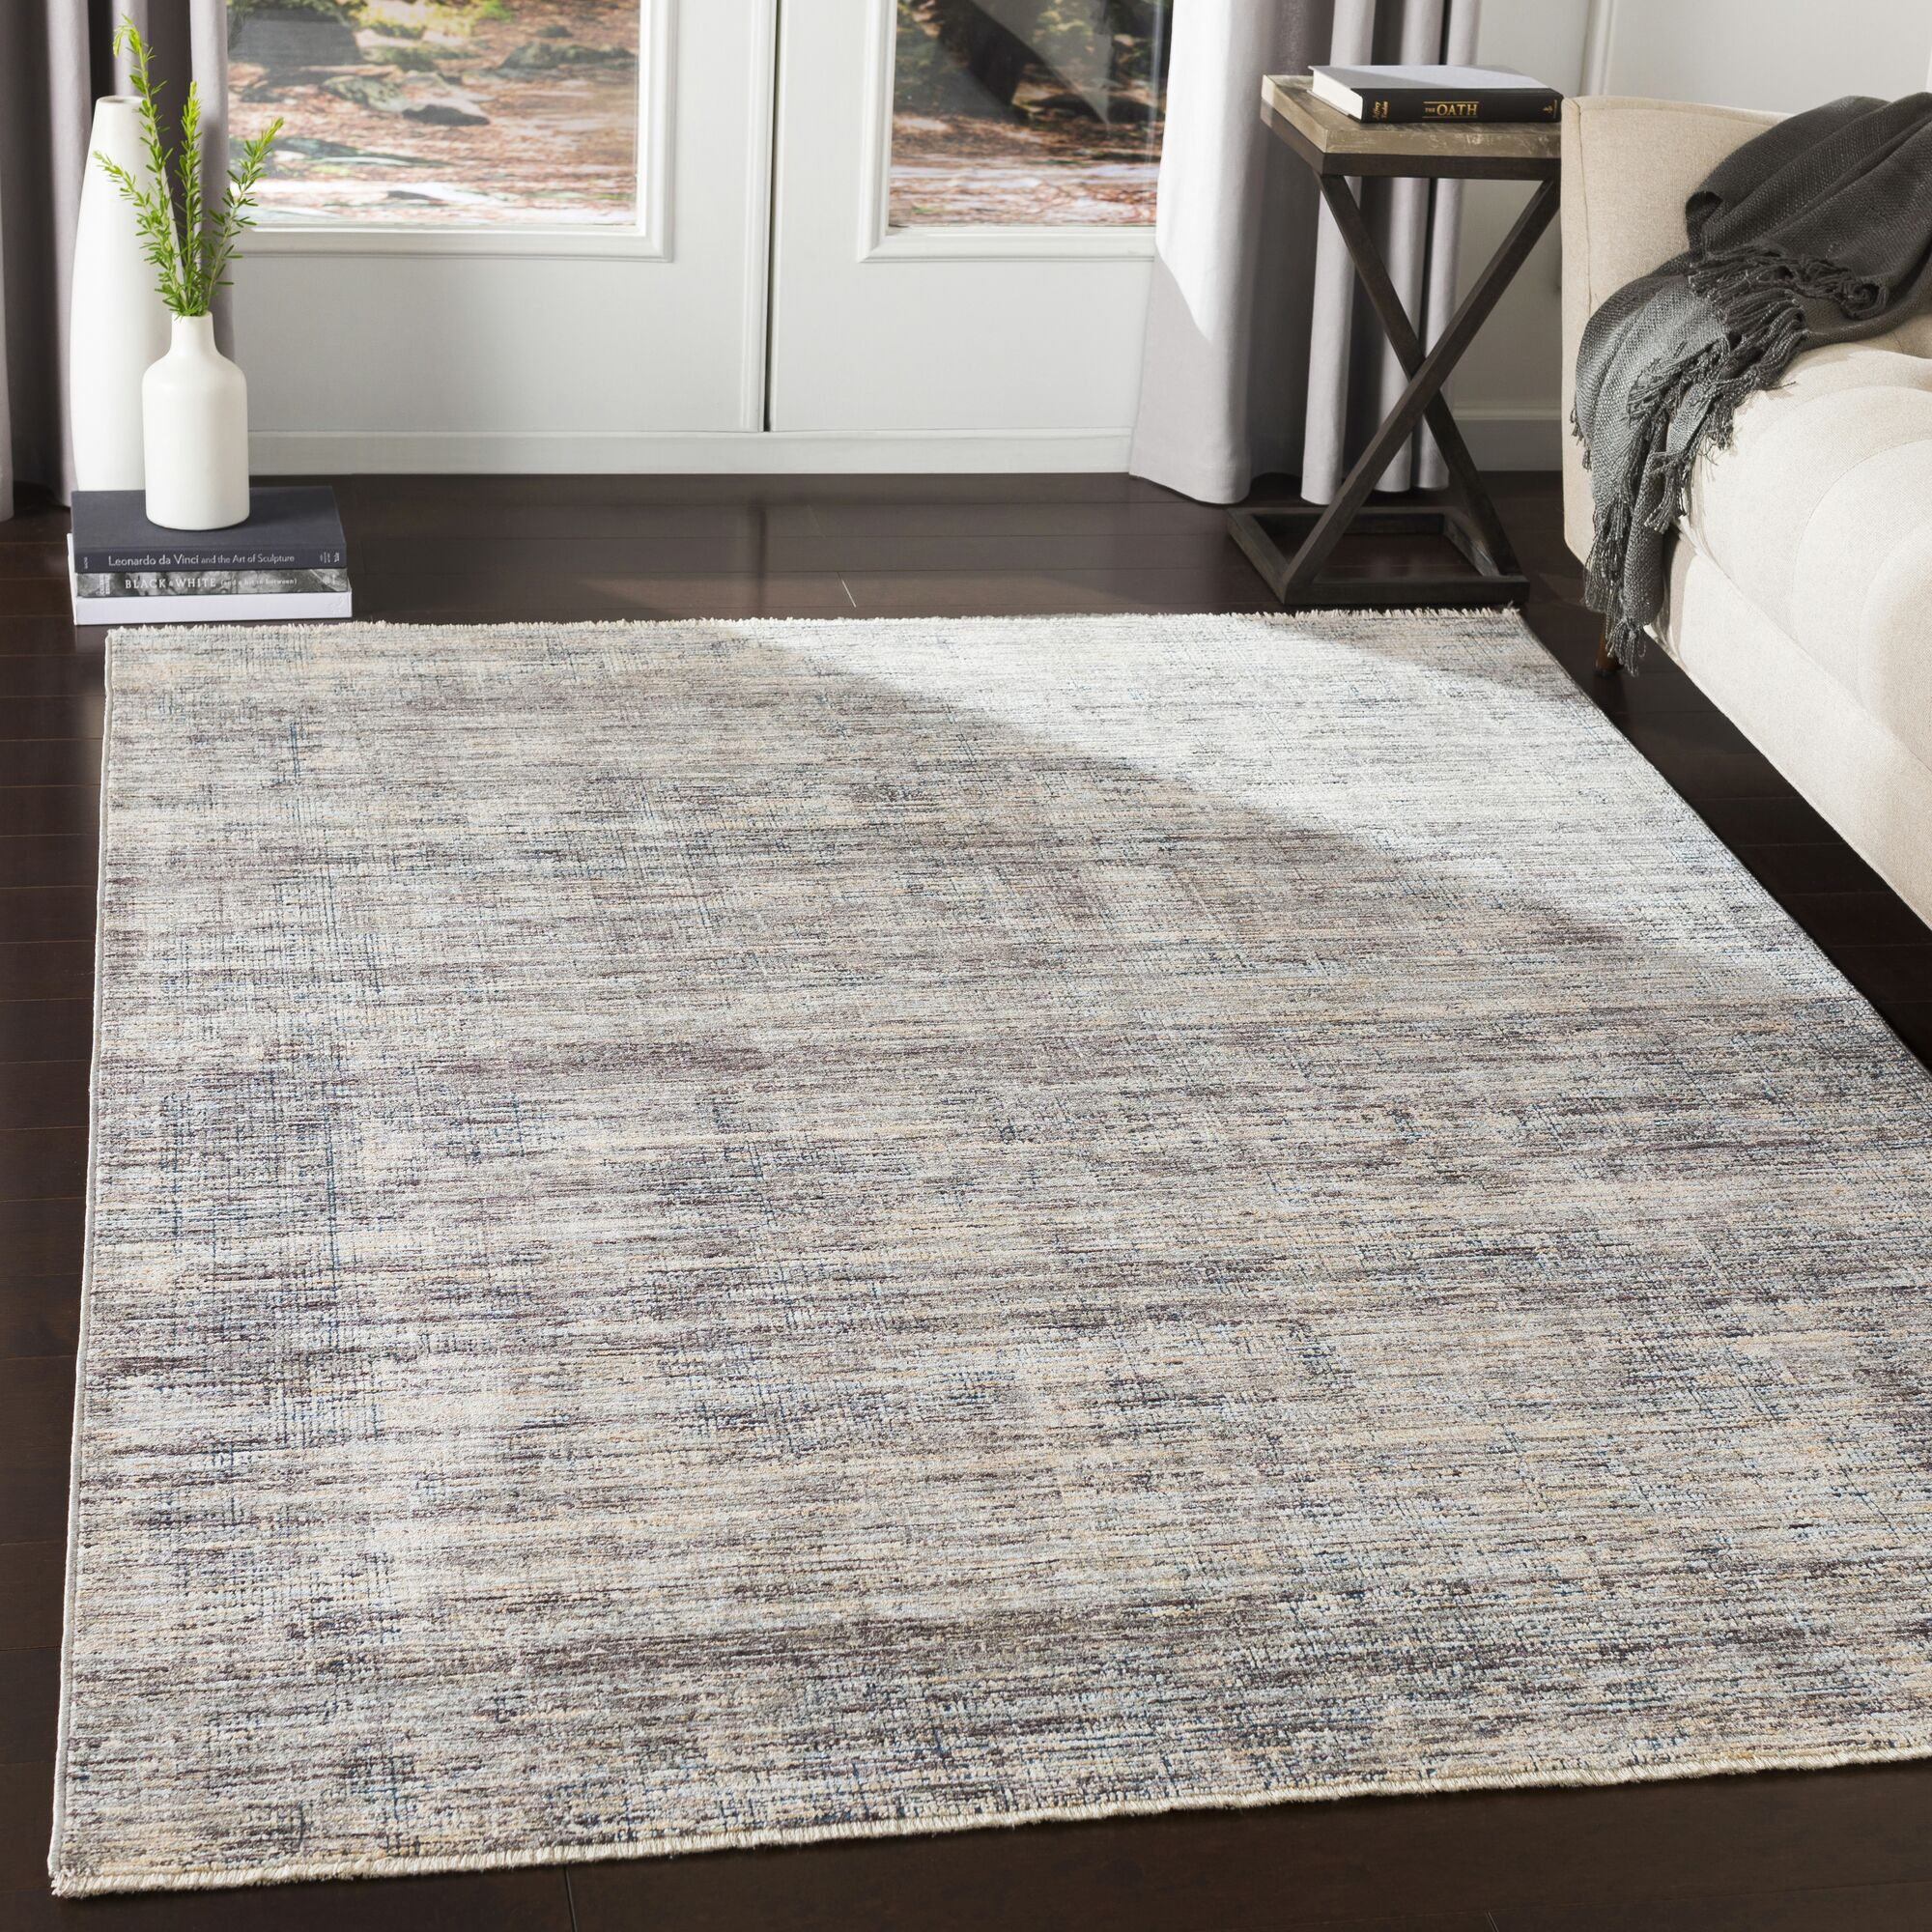 Mckeel Distressed Abstract Gray/Charcoal Area Rug Rug Size: Rectangle 9' x 13'1